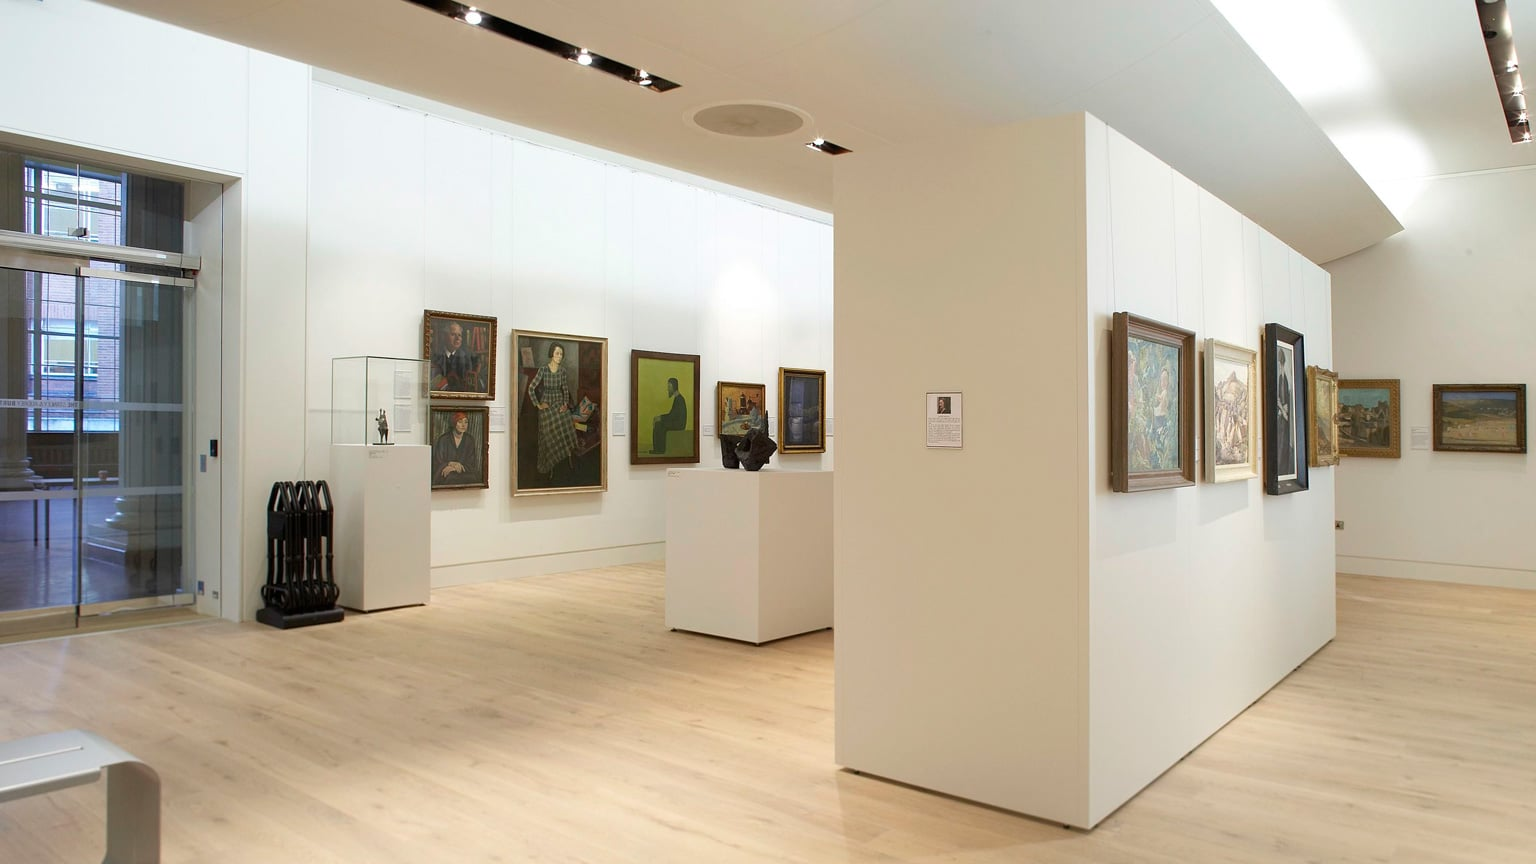 How to design an art gallery - The Stanley And Audrey Burton Gallery Artfund